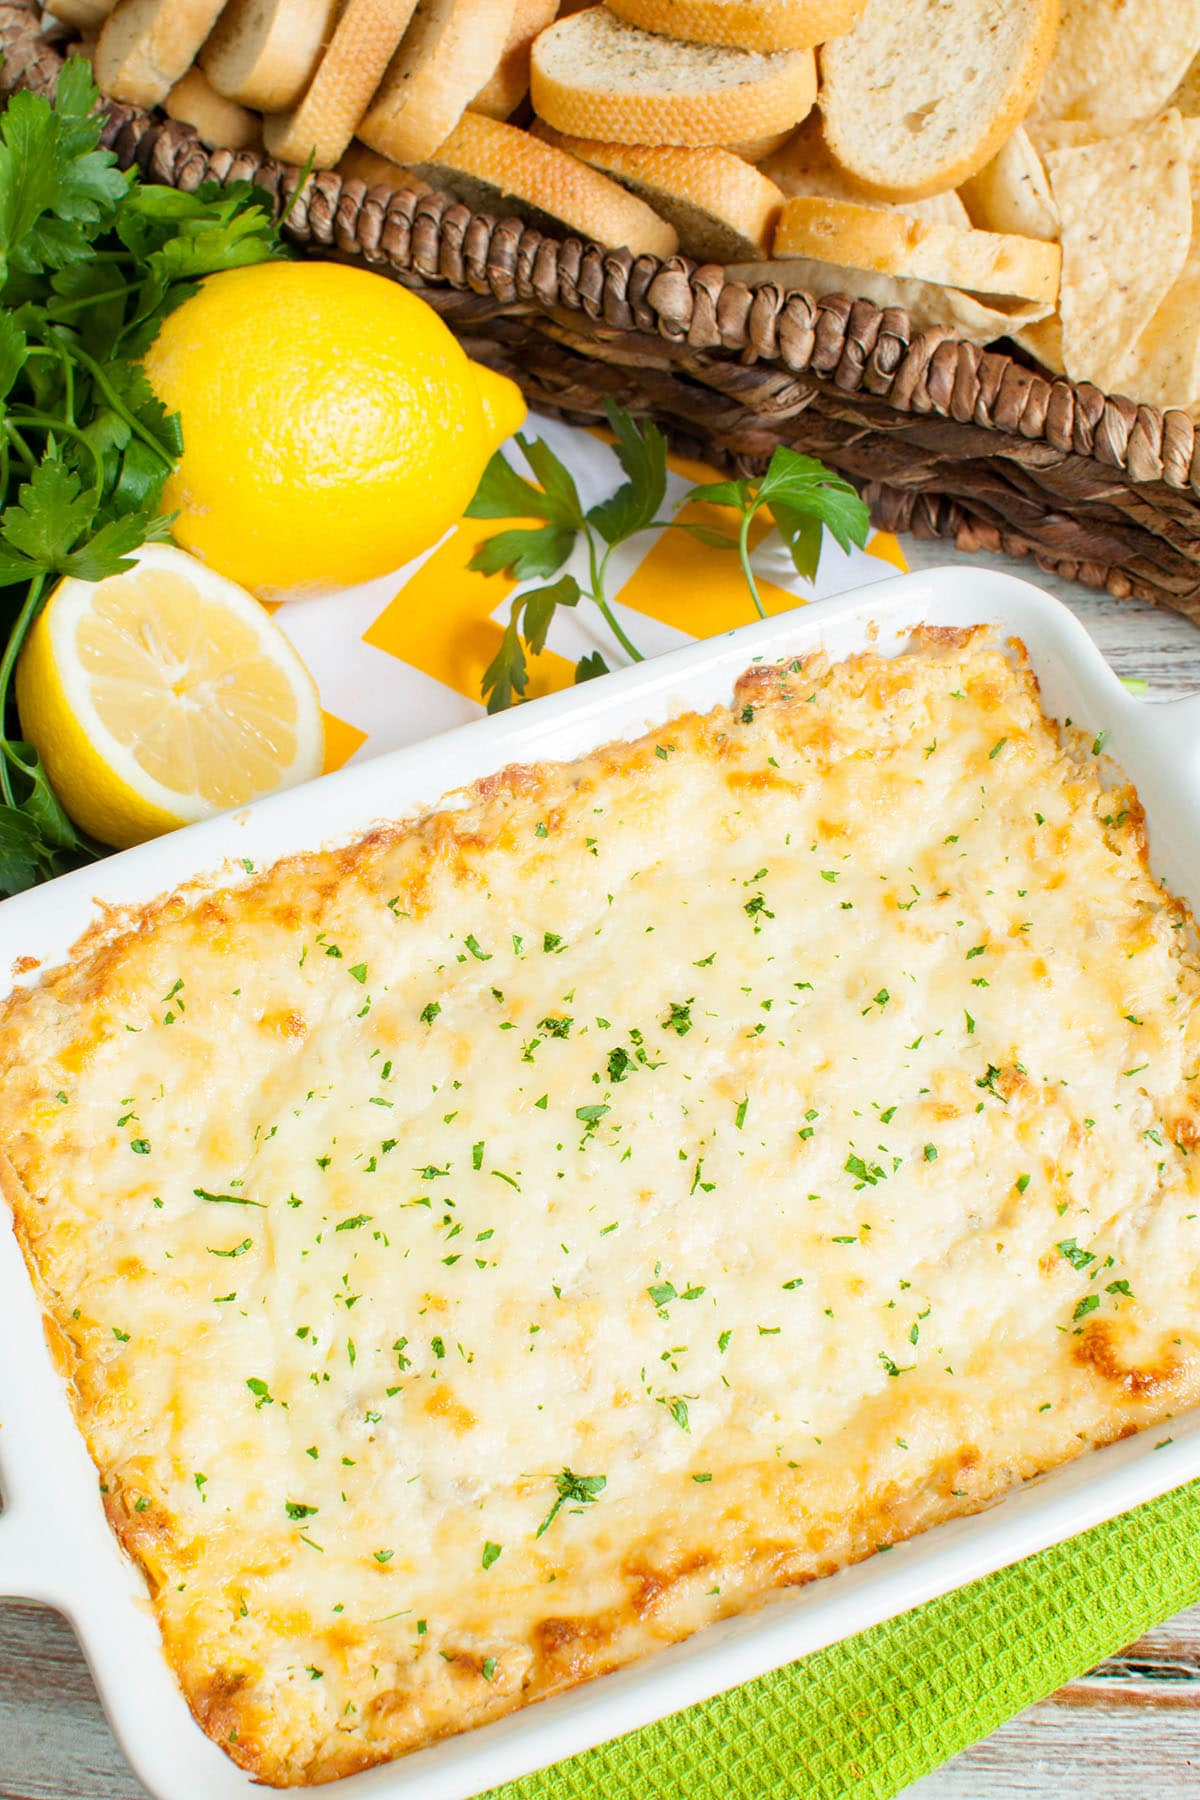 white baking dish of artichoke dip with lemons, parsley and a basket of dippers